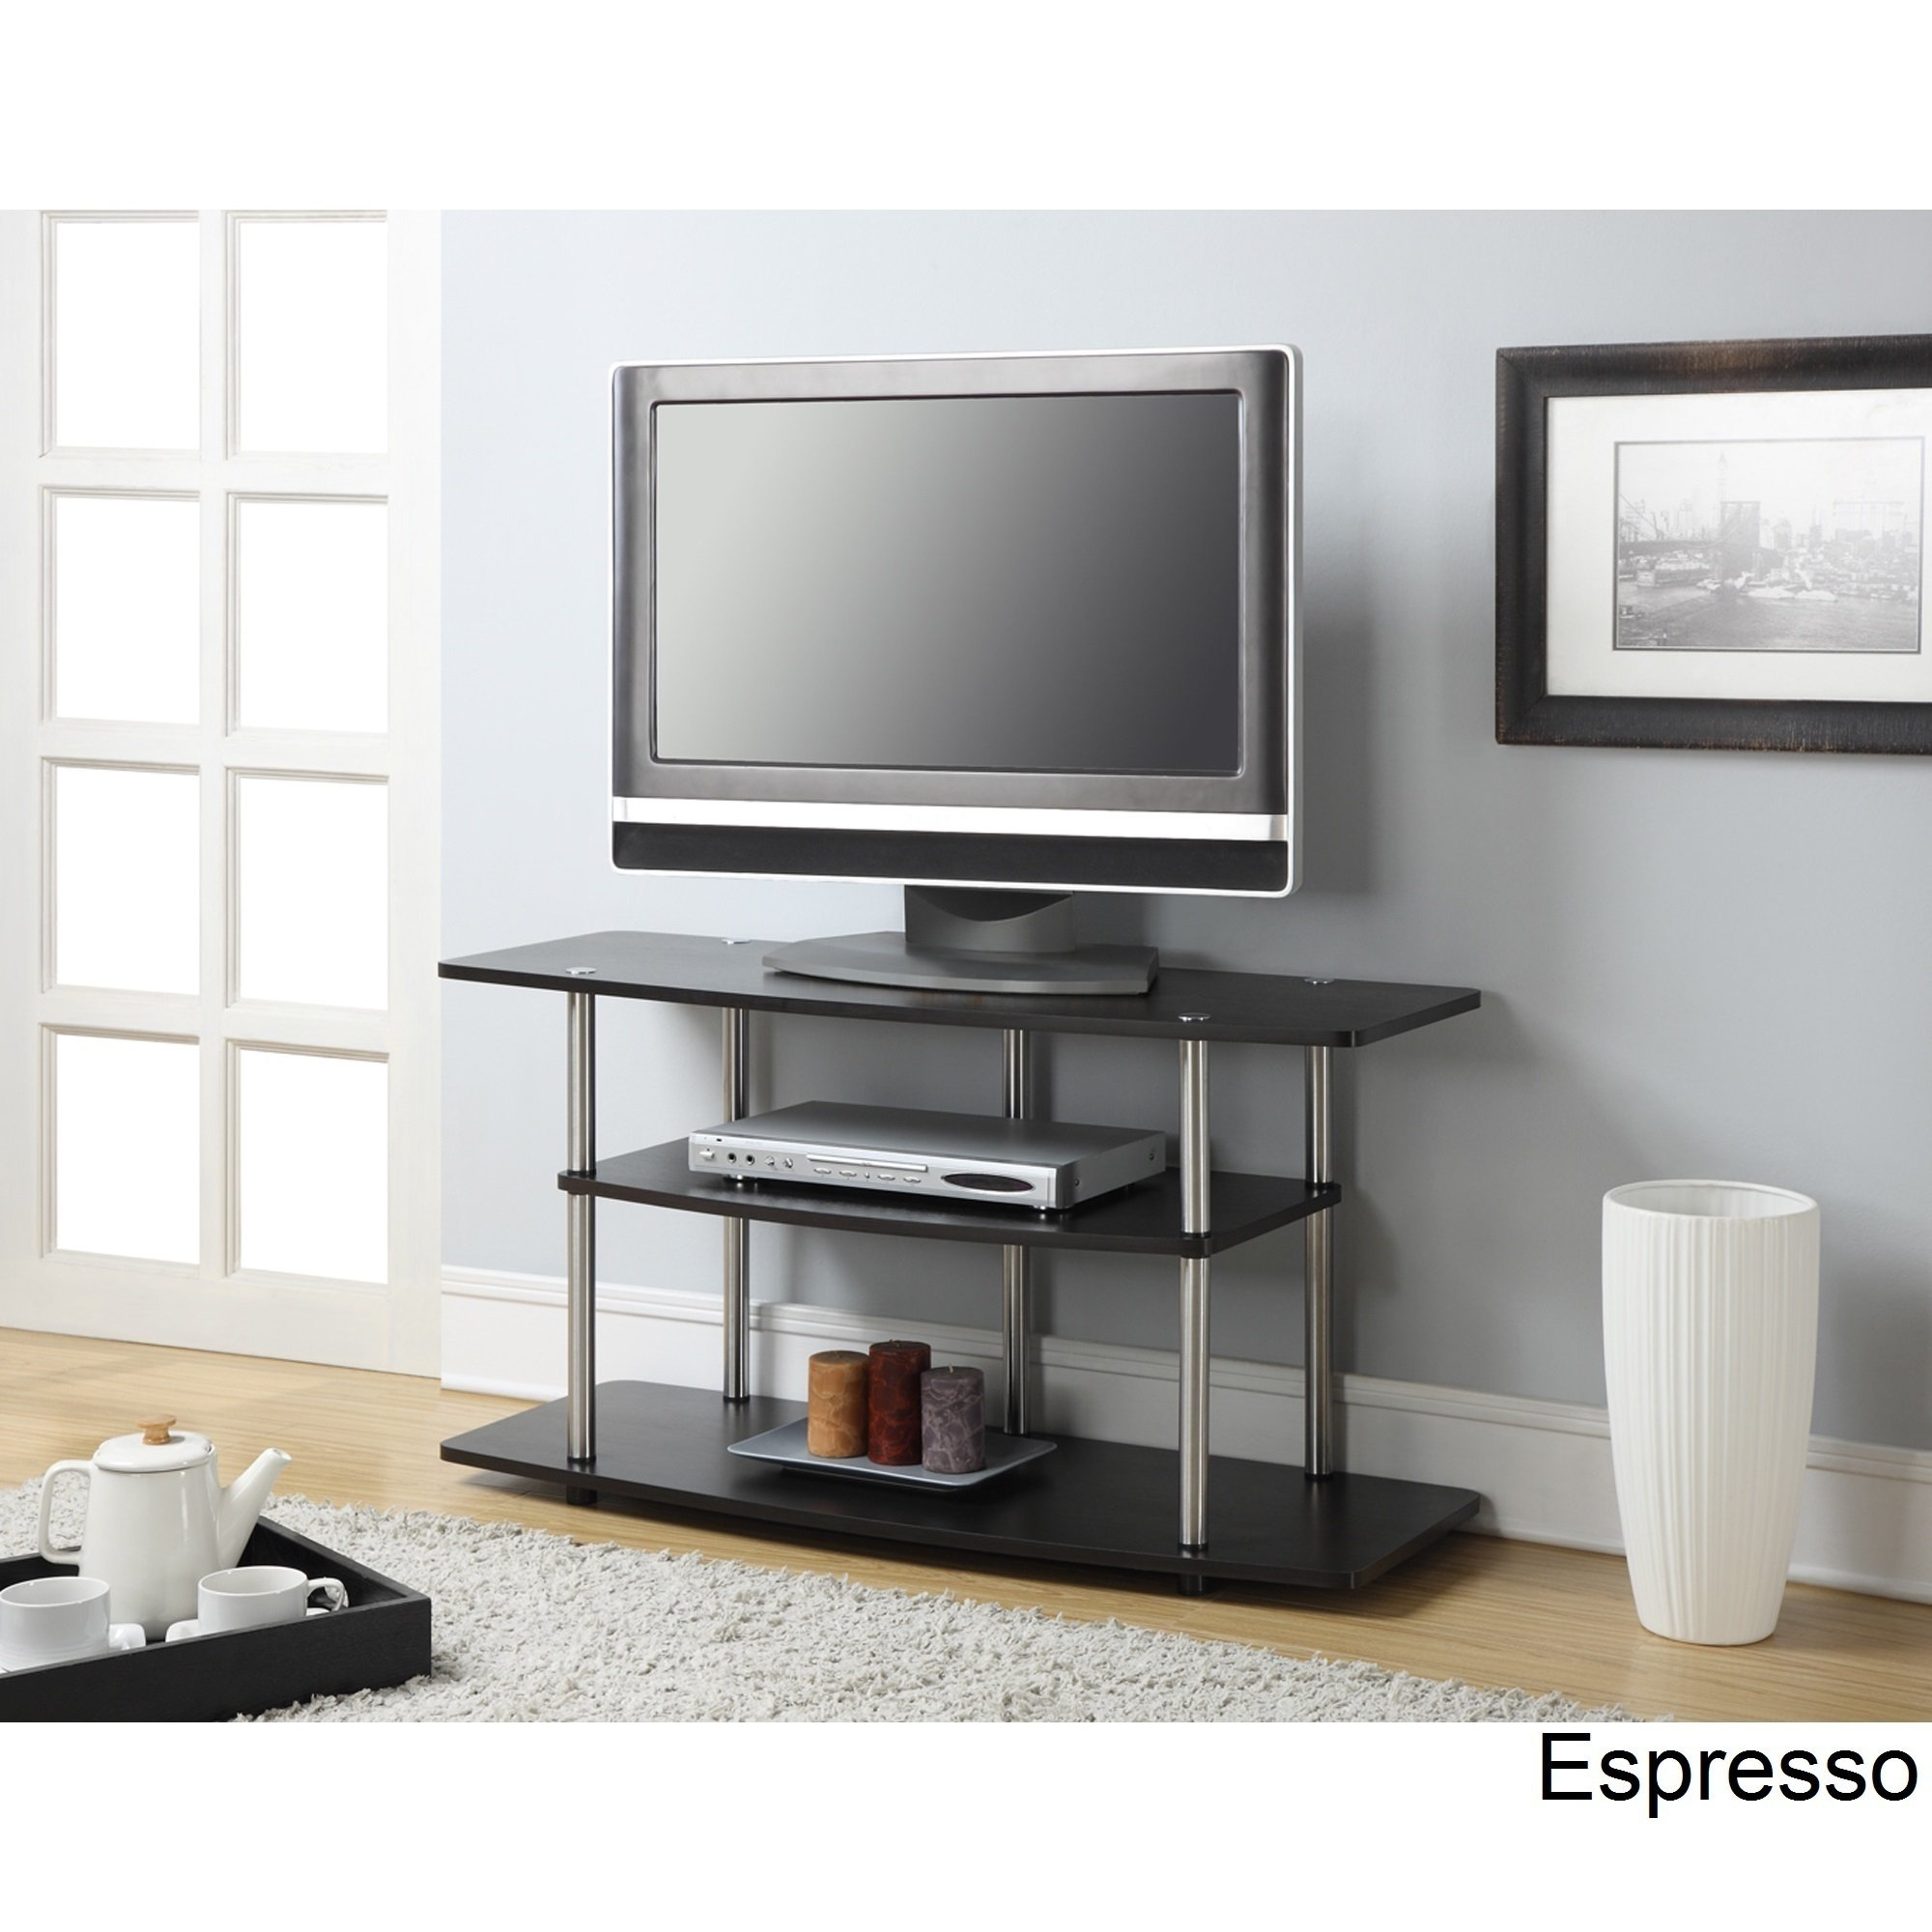 3 Tv Stands & Entertainment Centers For Less | Overstock For Rowan 45 Inch Tv Stands (Photo 15 of 30)